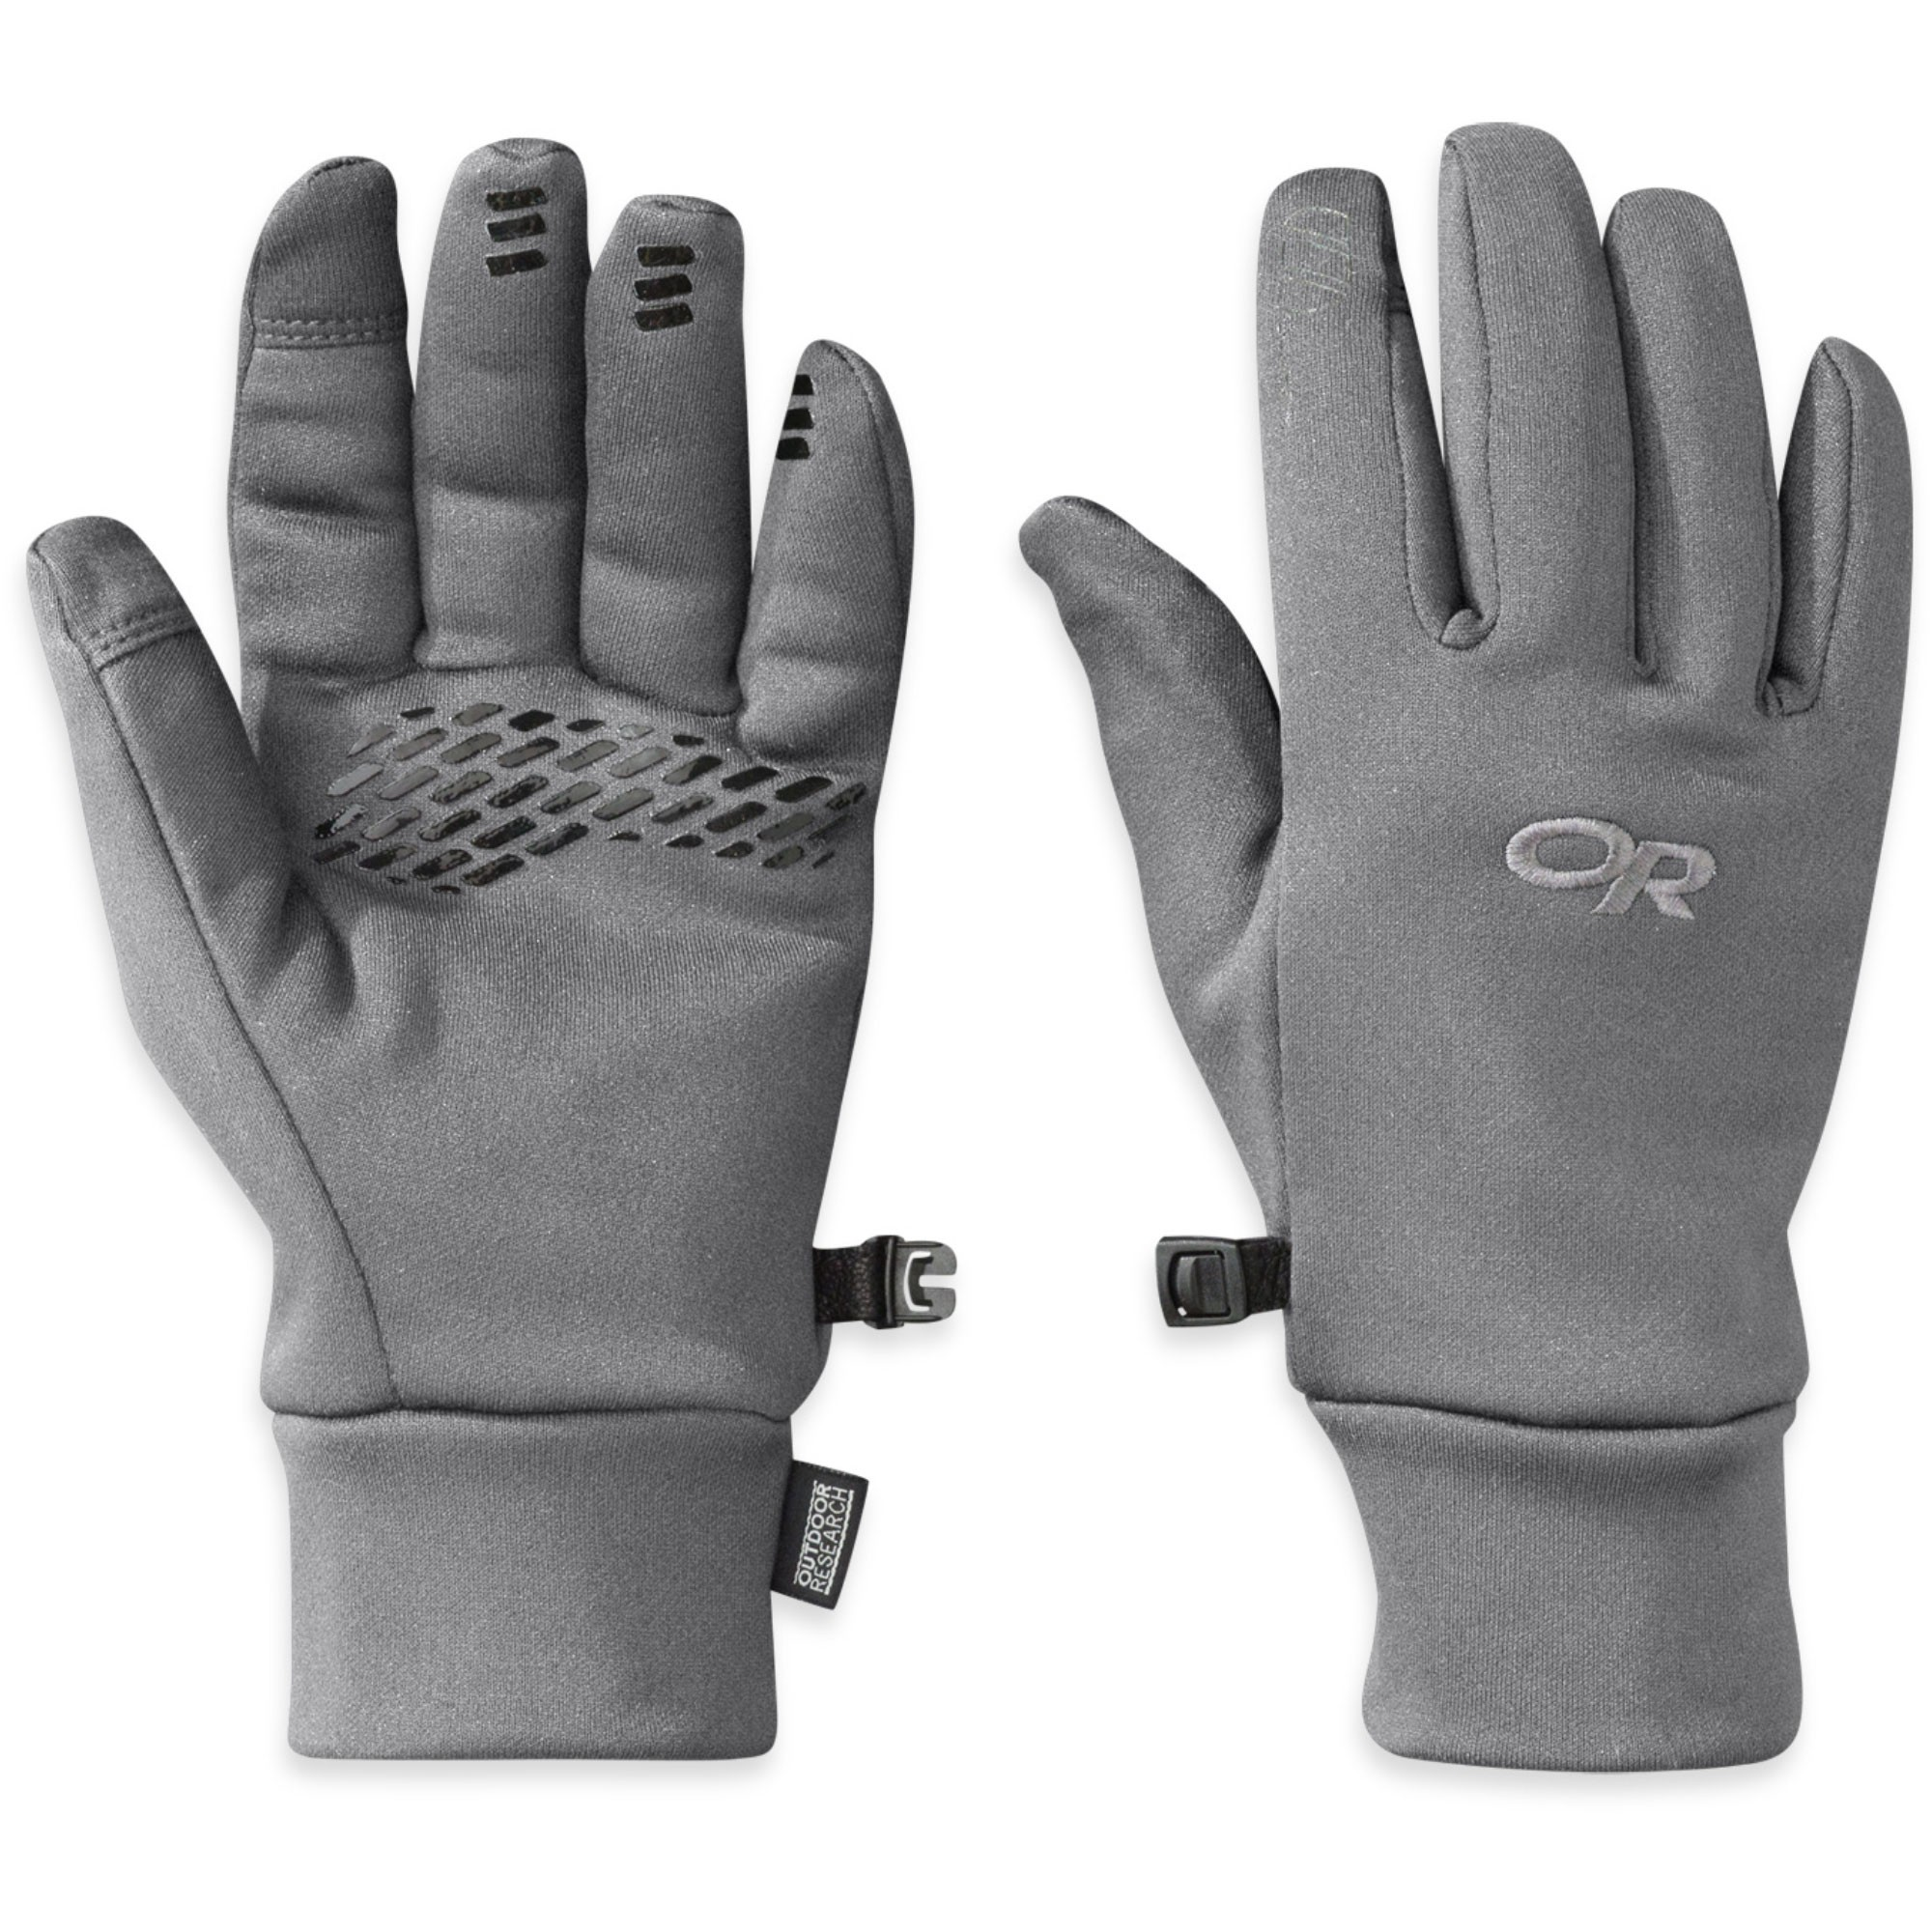 OUTDOOR RESEARCH - Women's PL400 Sensor Gloves - Charcoal Heather